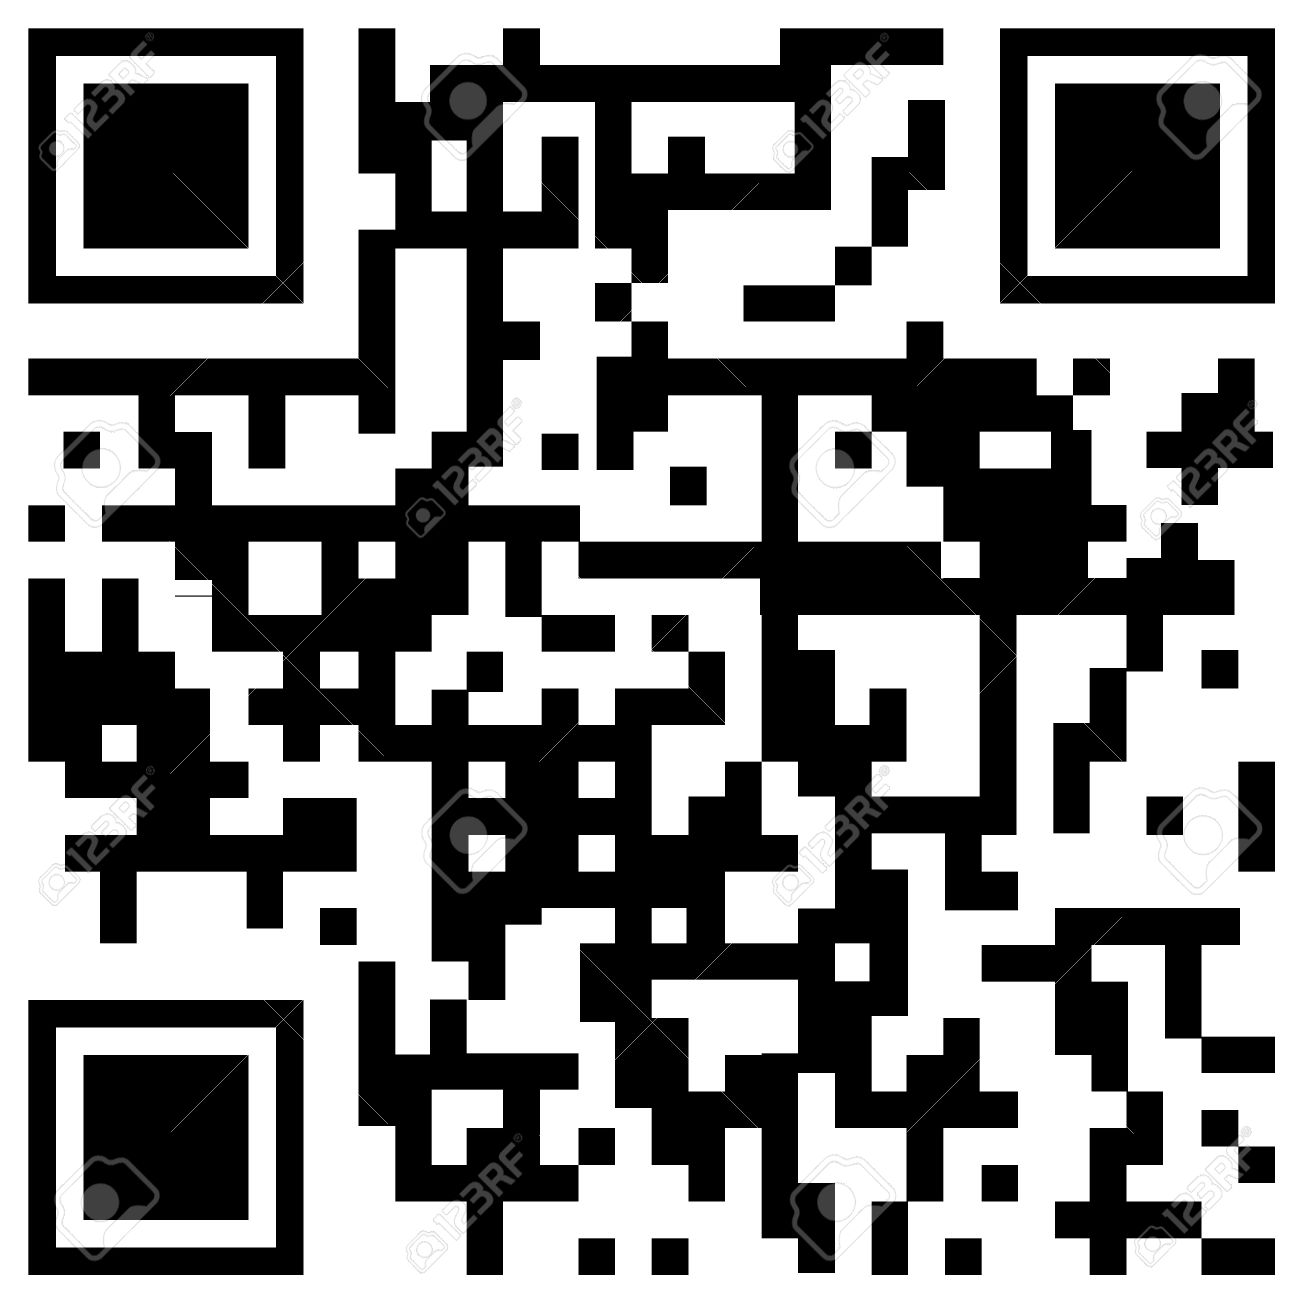 Sample qr code to scan with smart phone in white background